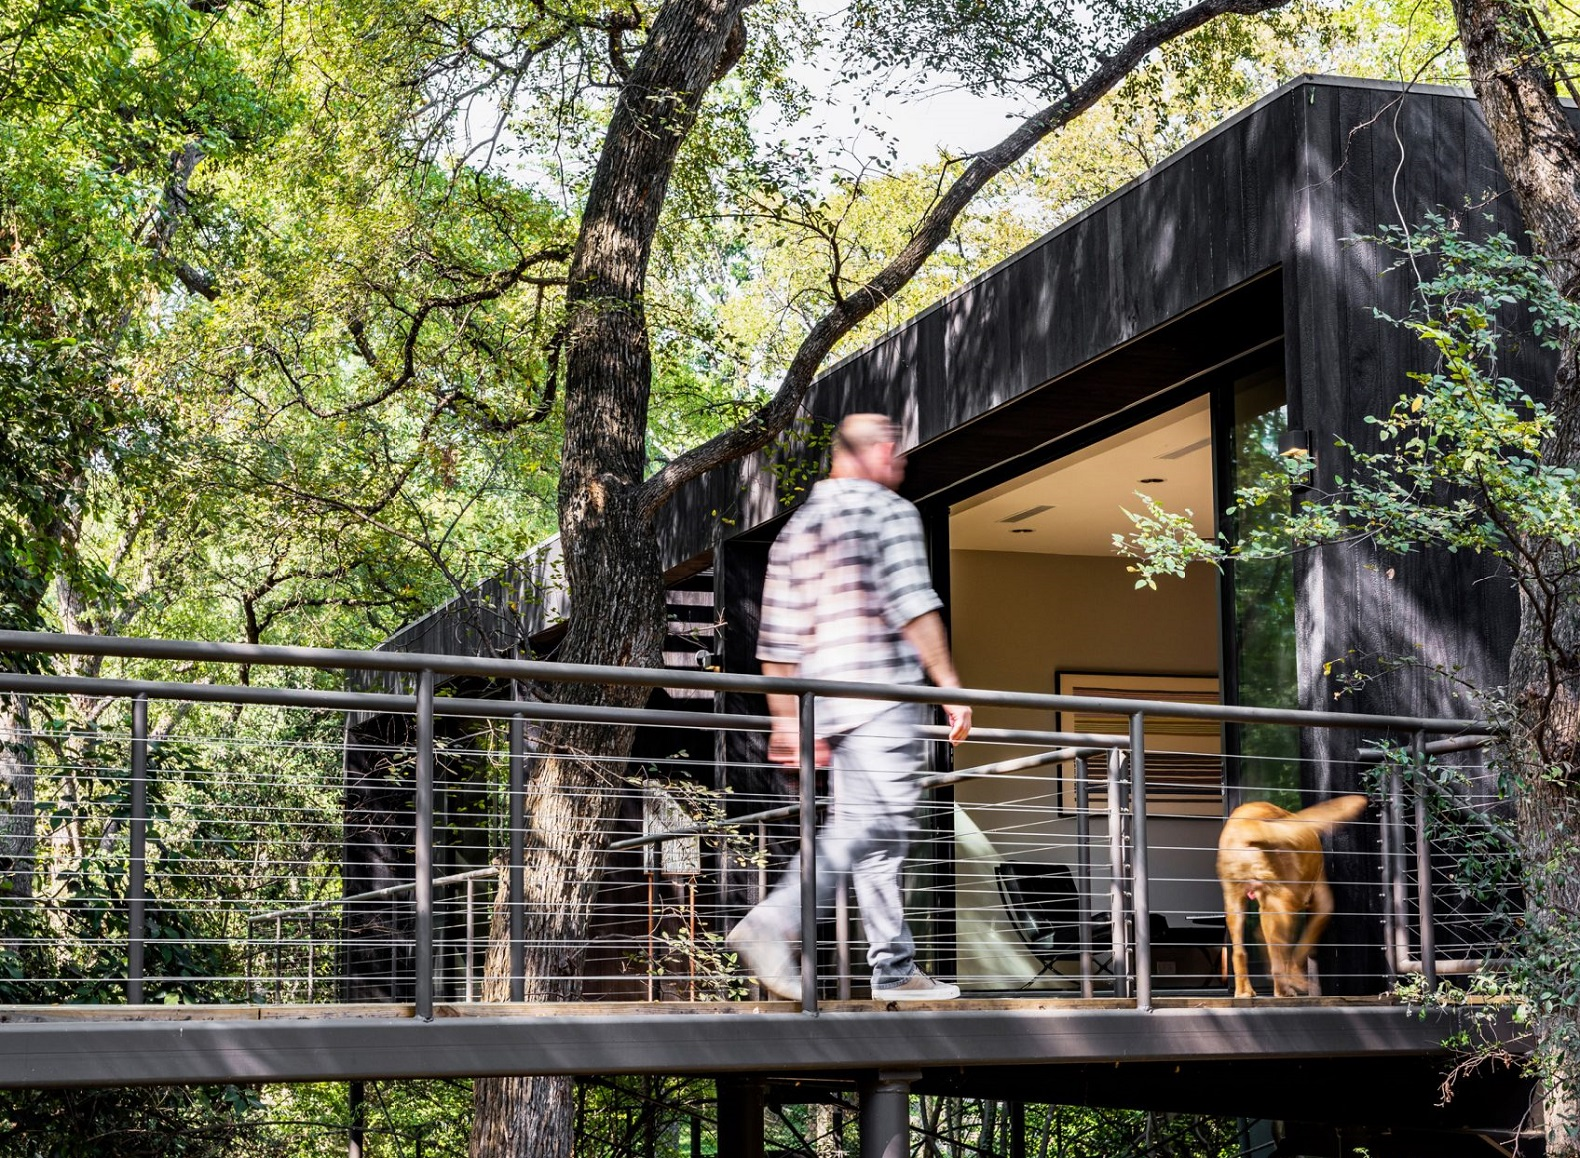 The Treebox is an amazing modern home set high up in the treetops